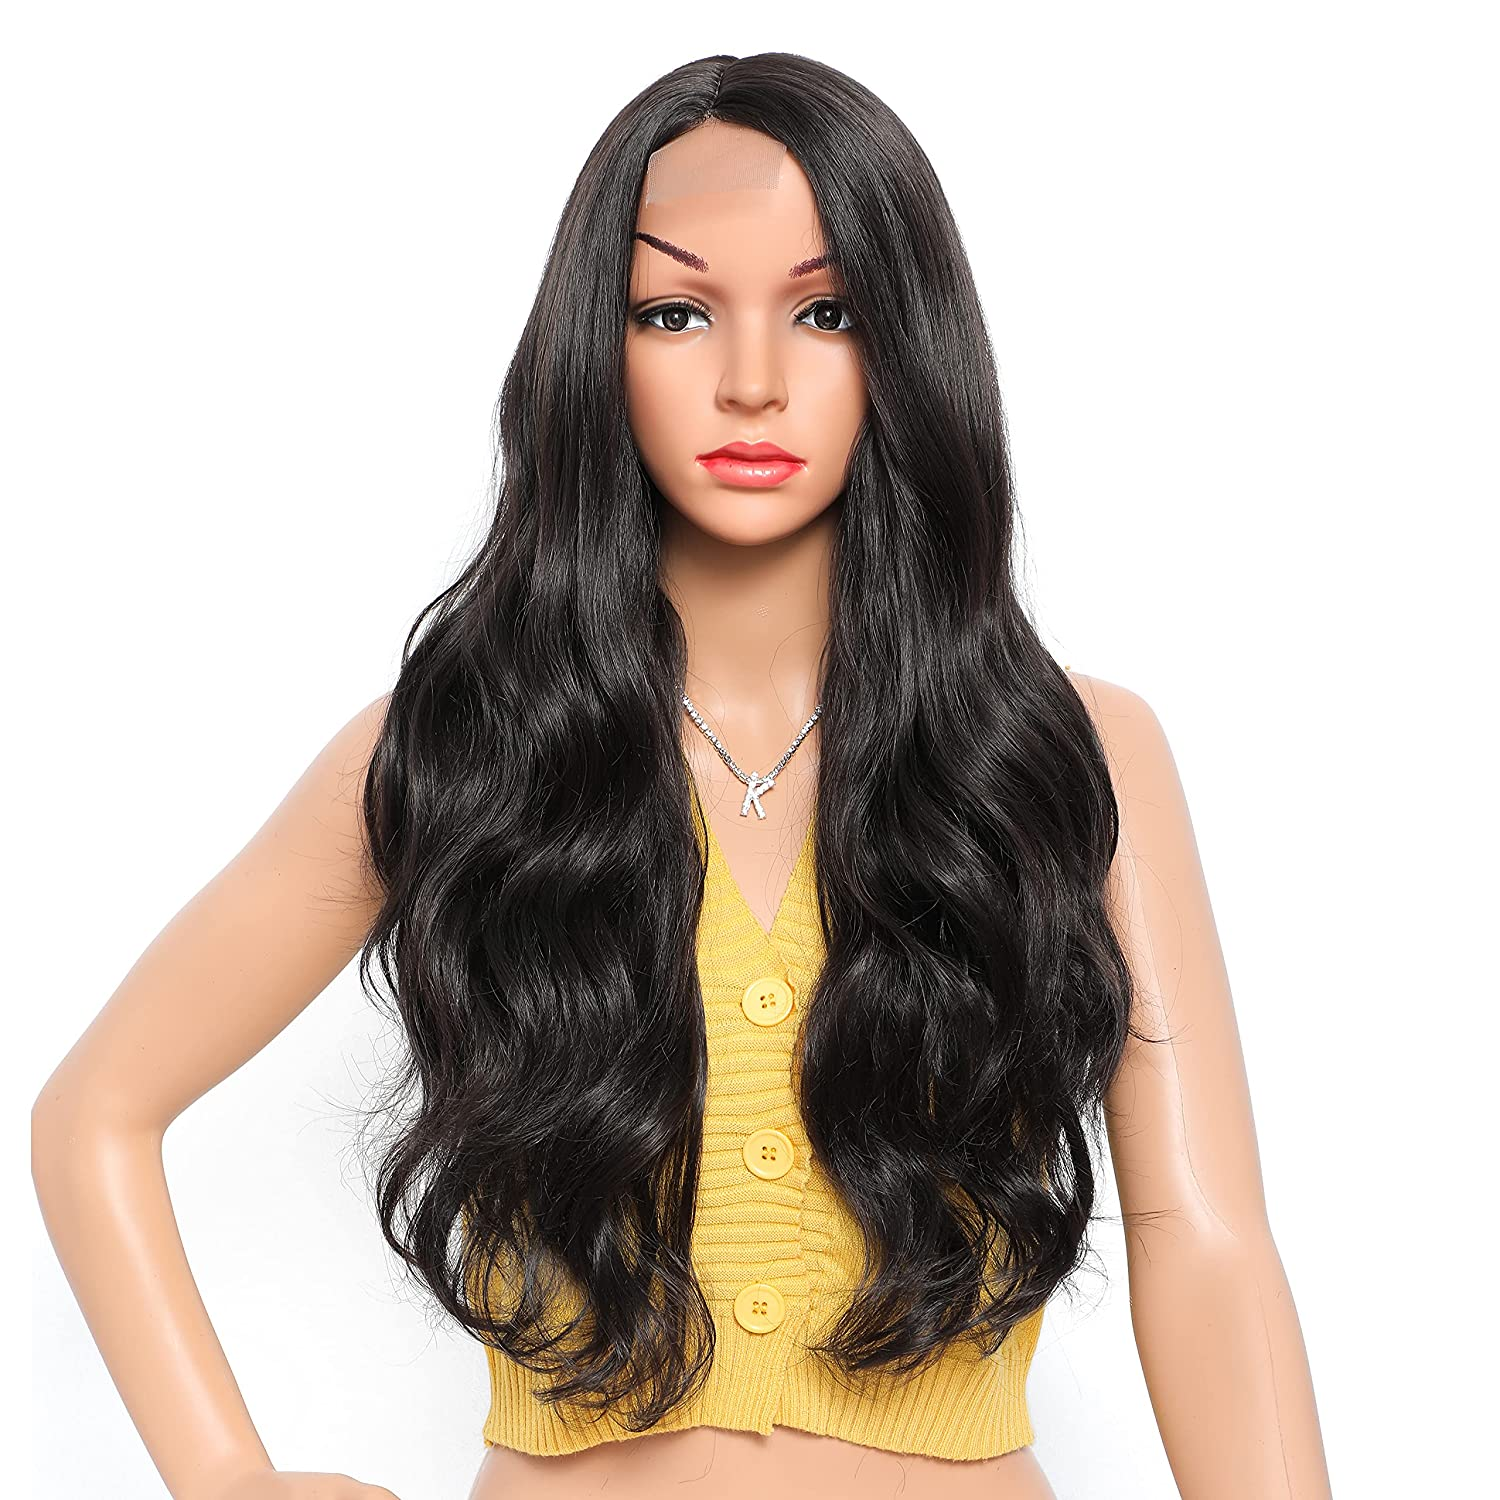 LuLu Haireate Long Wavy Soldering Wig Natural for Max 50% OFF Wigs Wom Synthetic Black